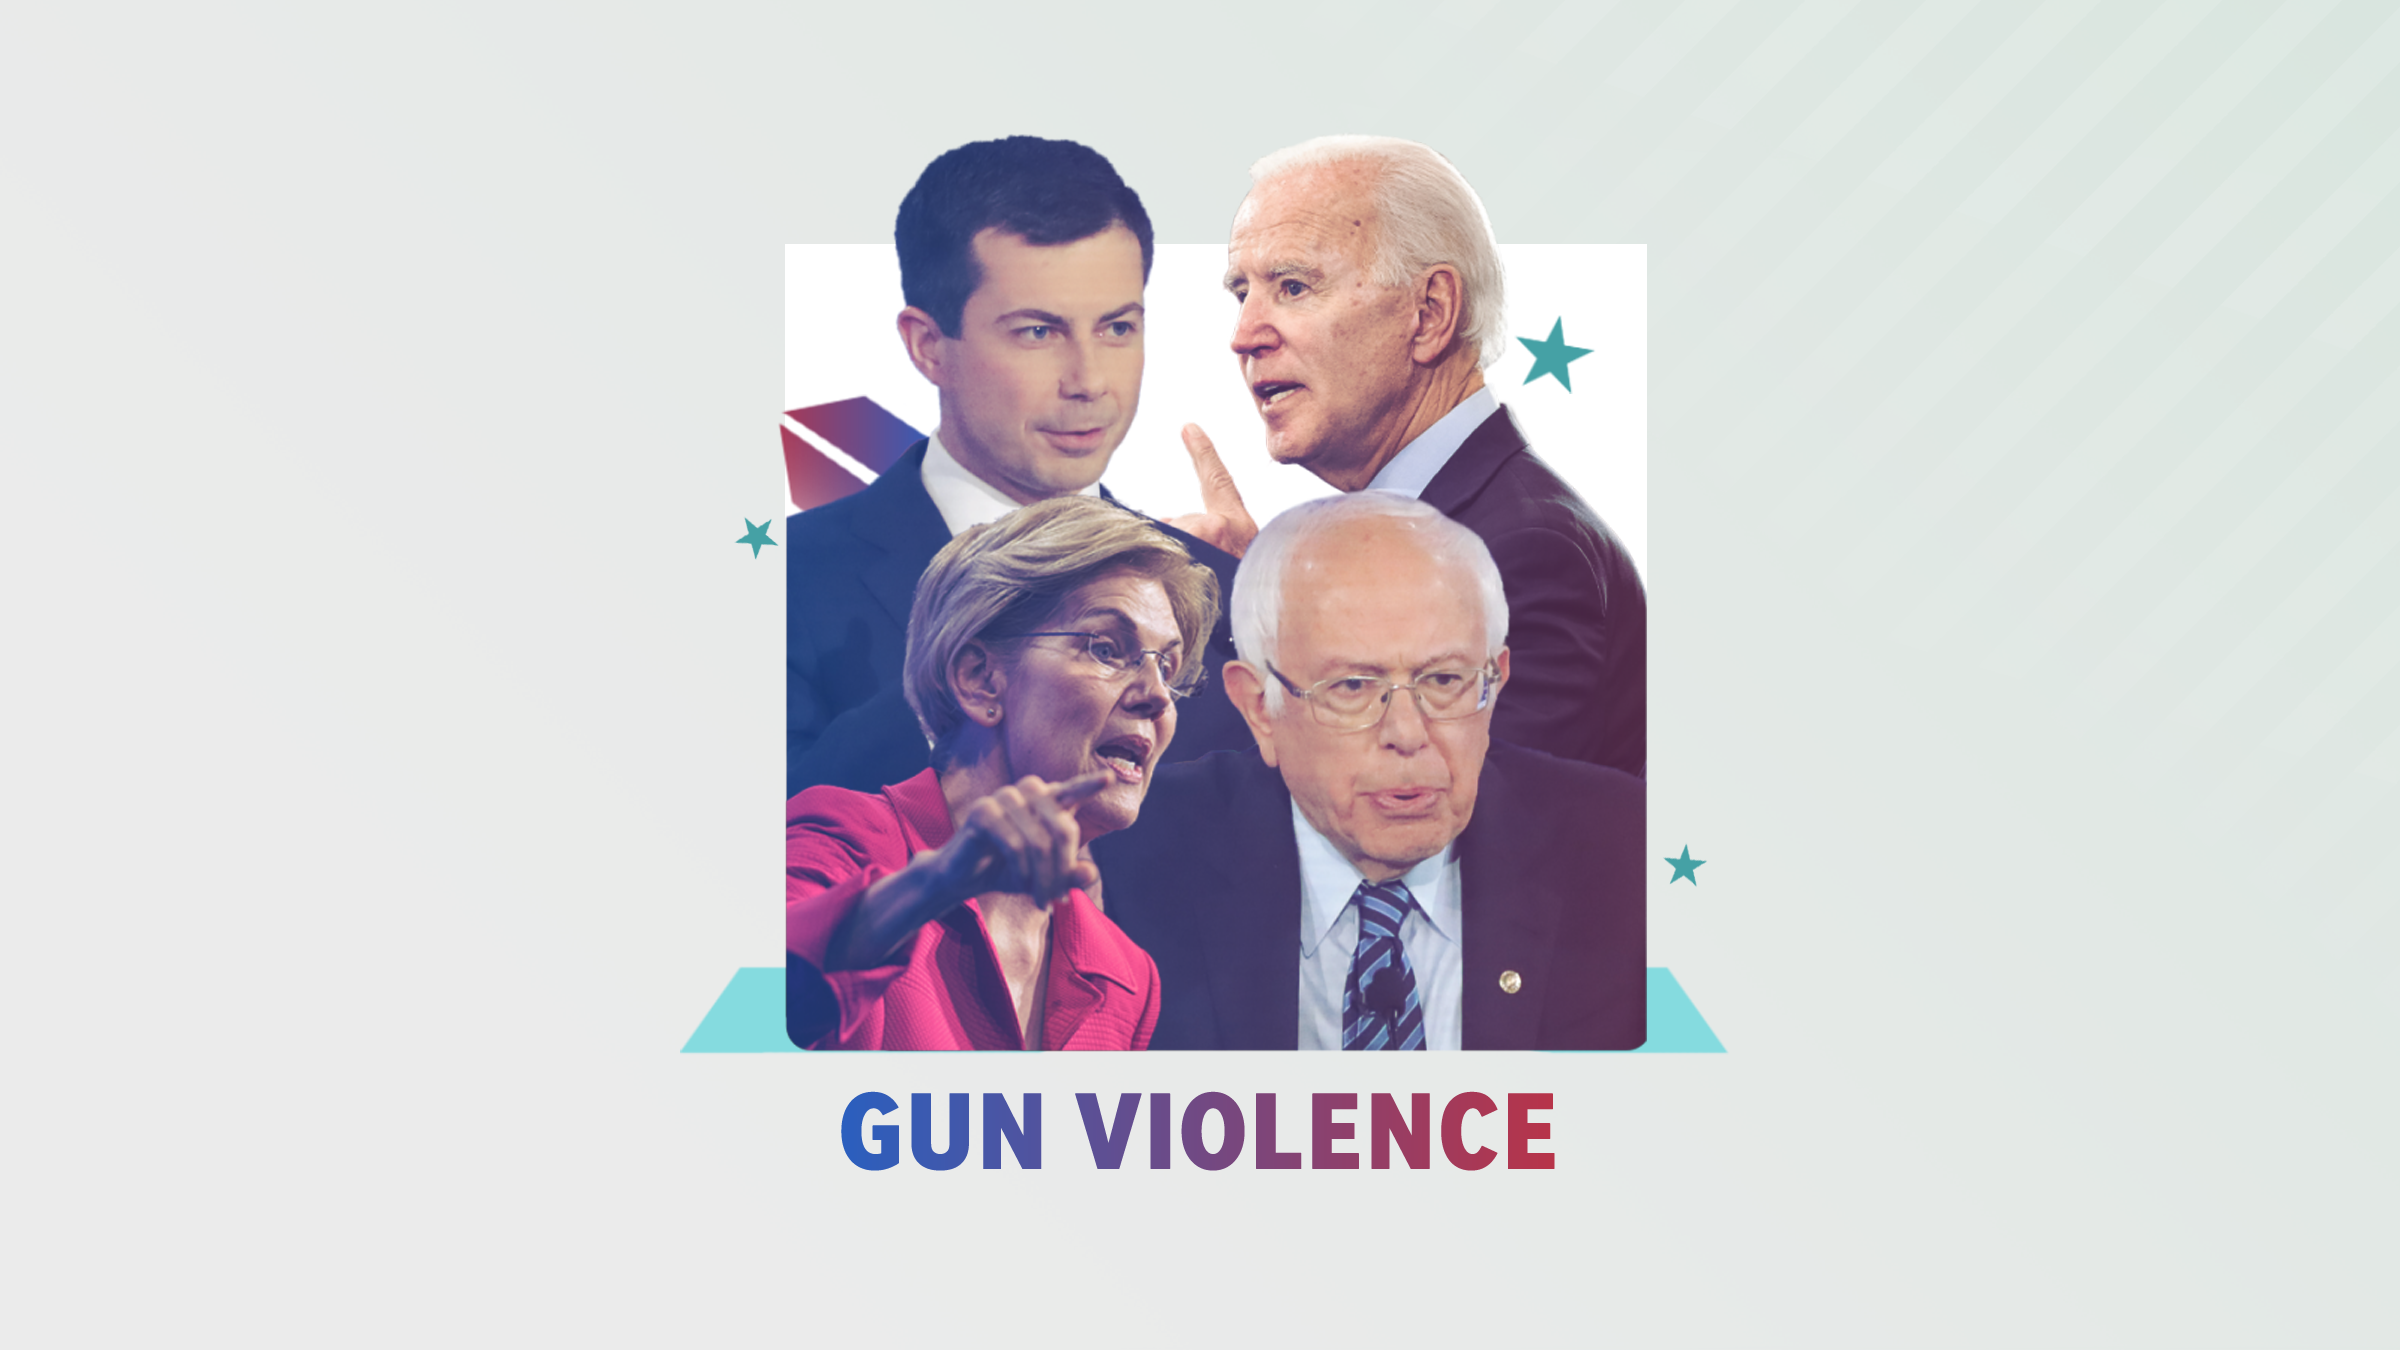 How the 2020 presidential candidates would handle gun violence